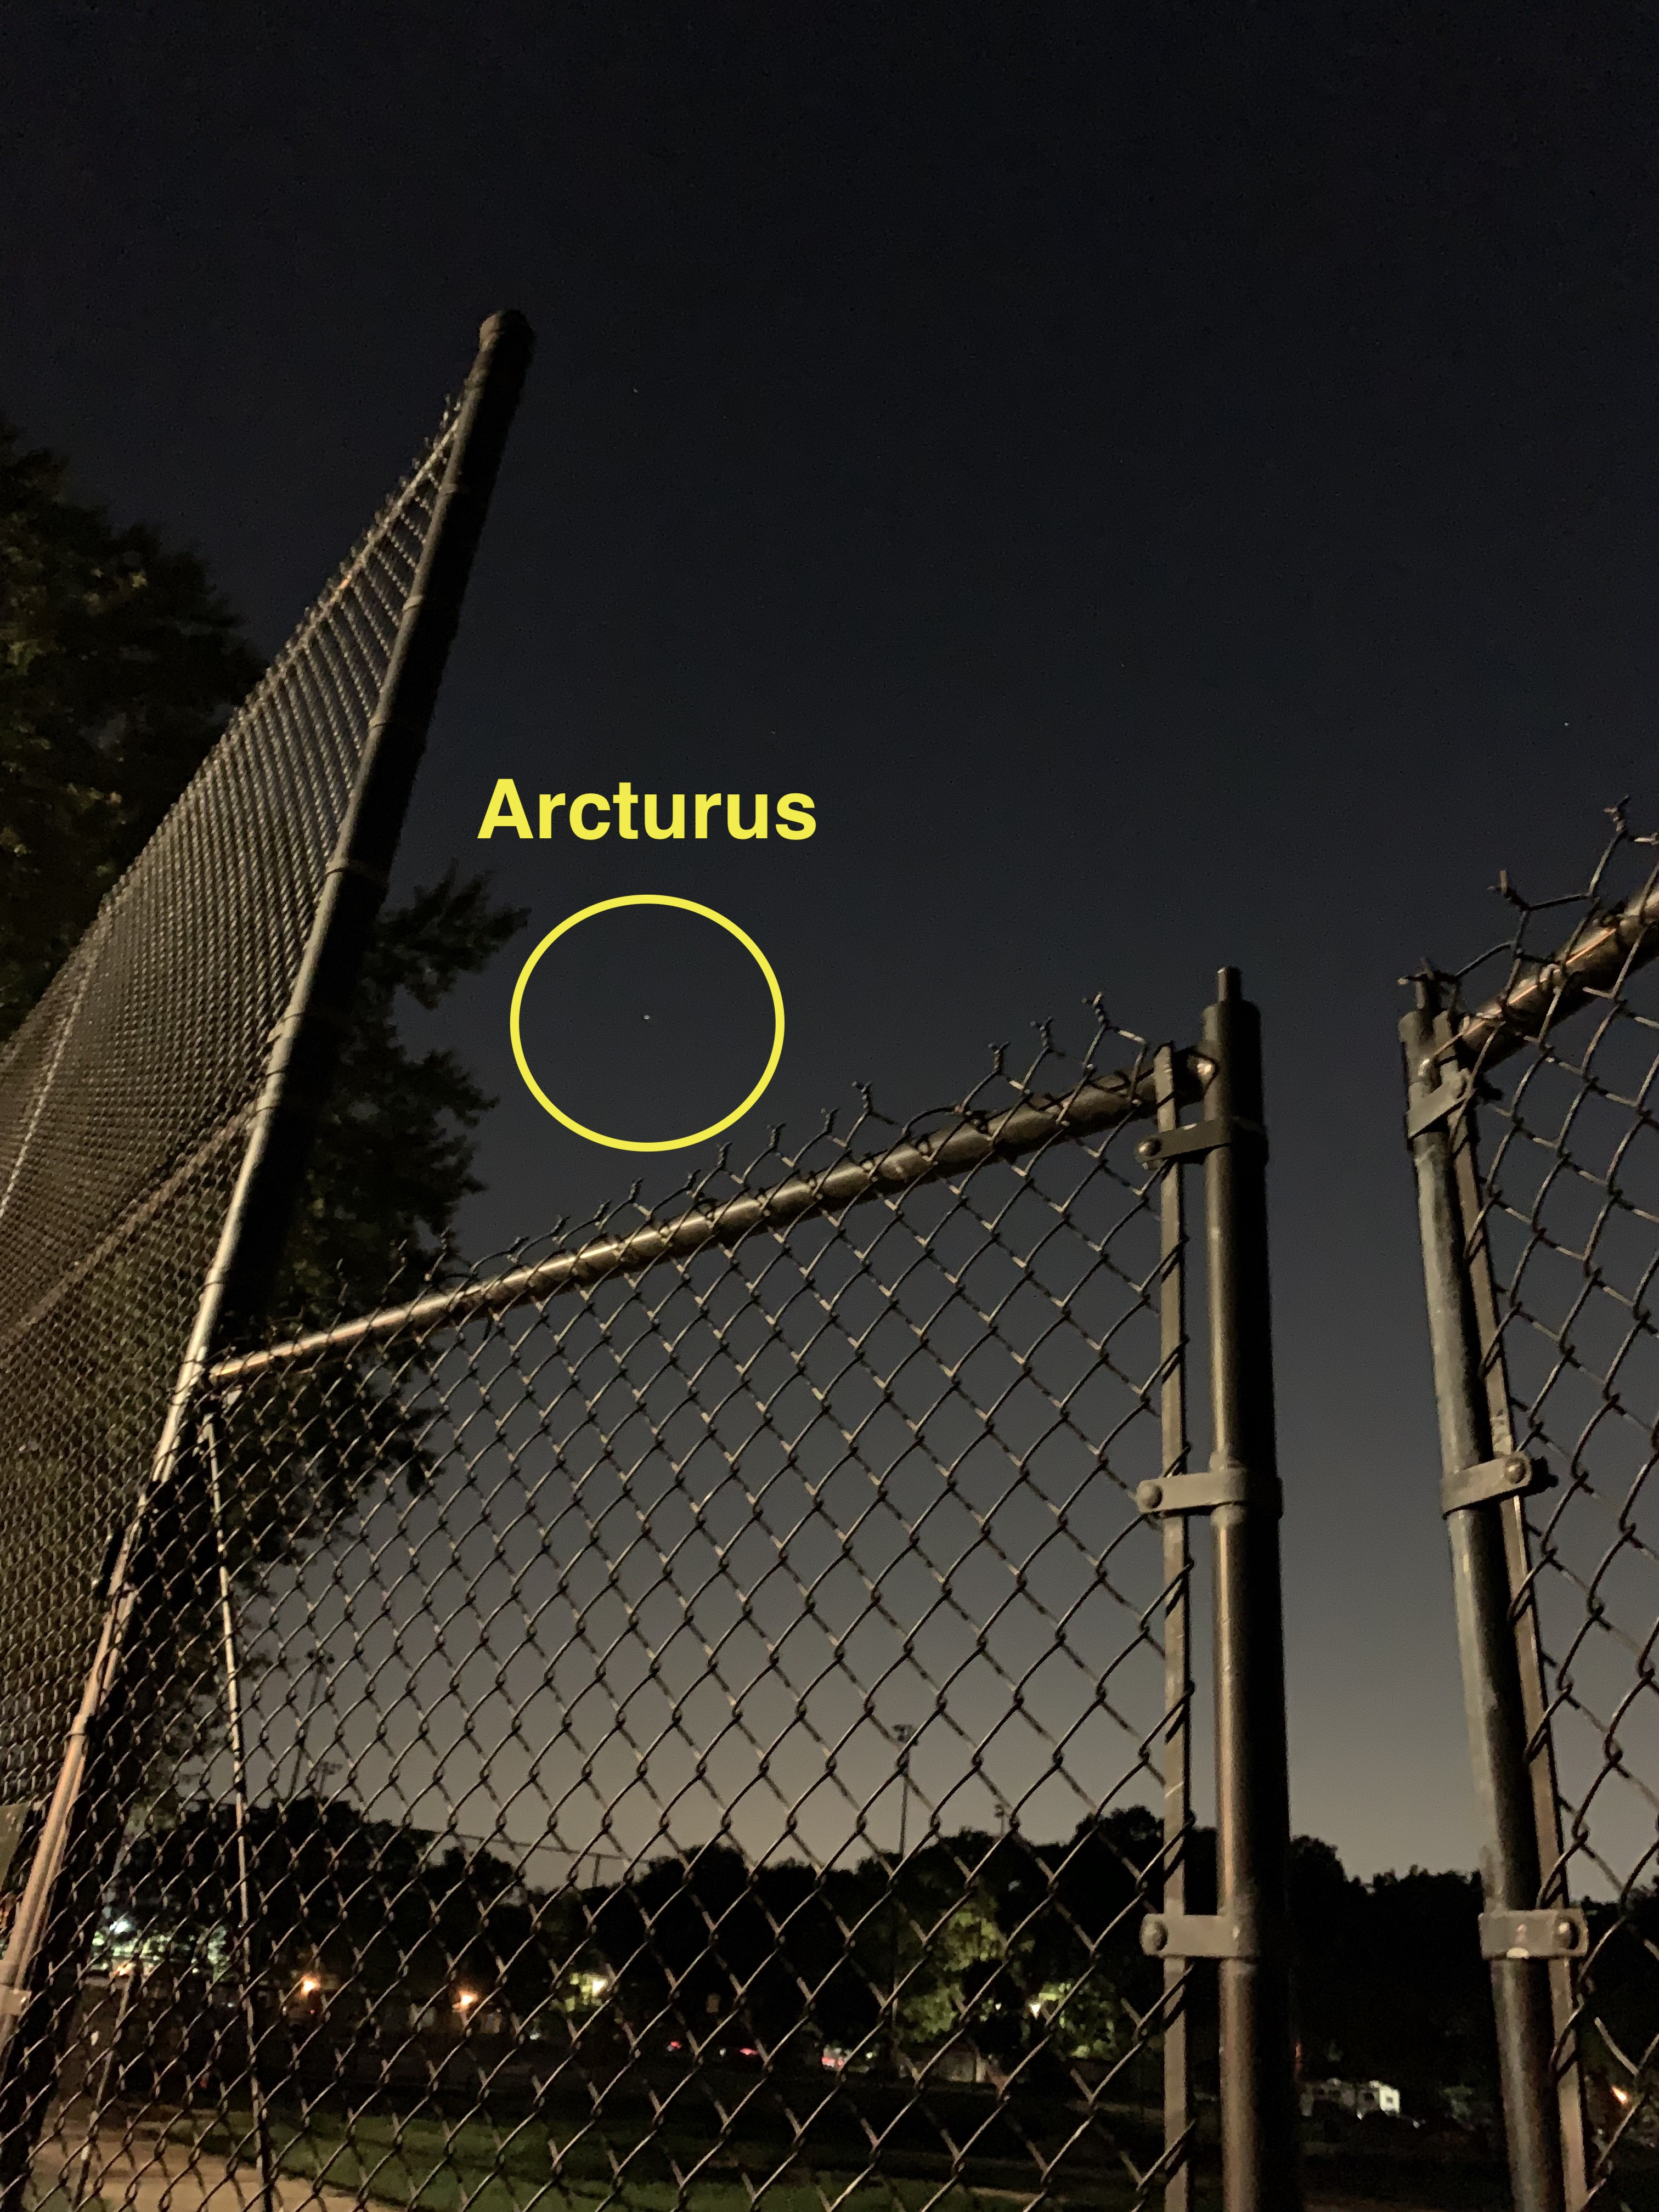 View of night sky over a chainlink fence, with one star circled and labeled as Arcturus.